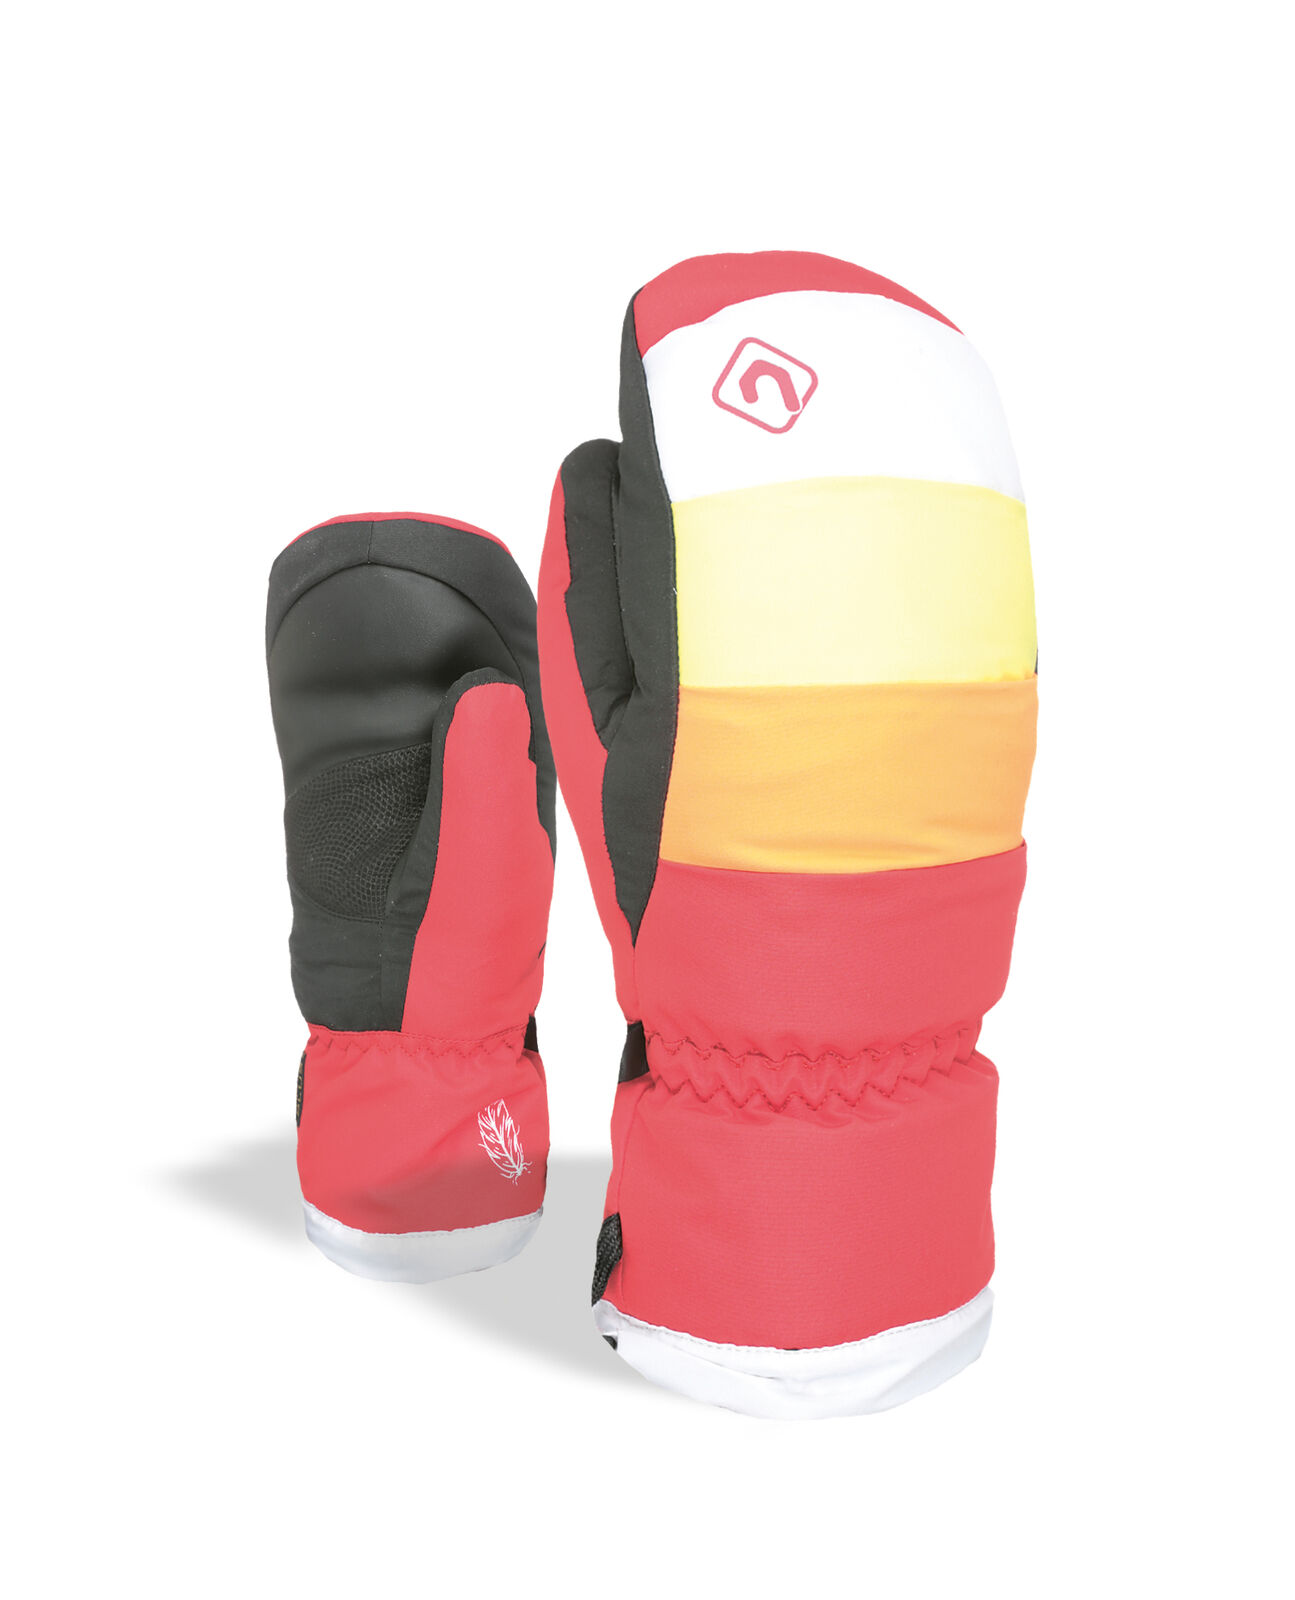 Level Handschuh Rainbow Down JR  Mitt red wasserdicht atmungsaktiv  free shipping!